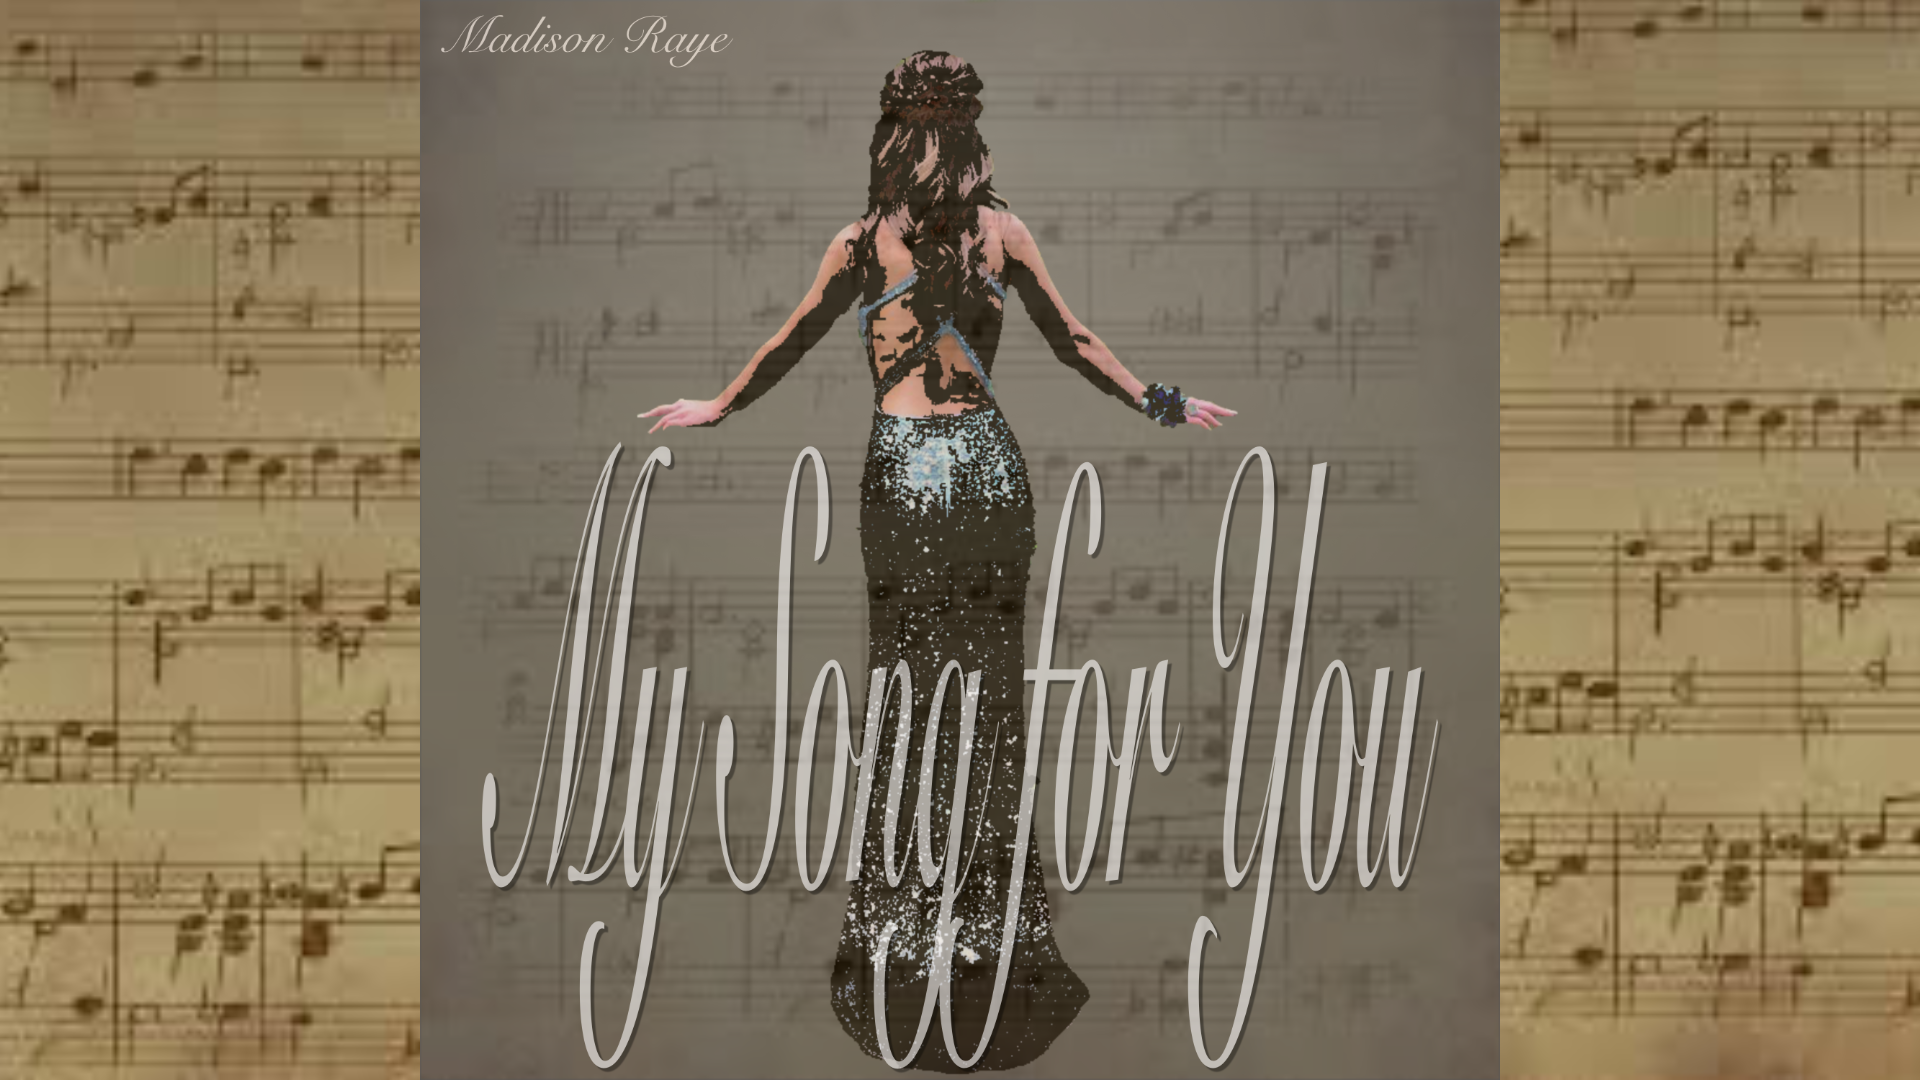 My Song for You (Madison Raye feat. eight passengers)